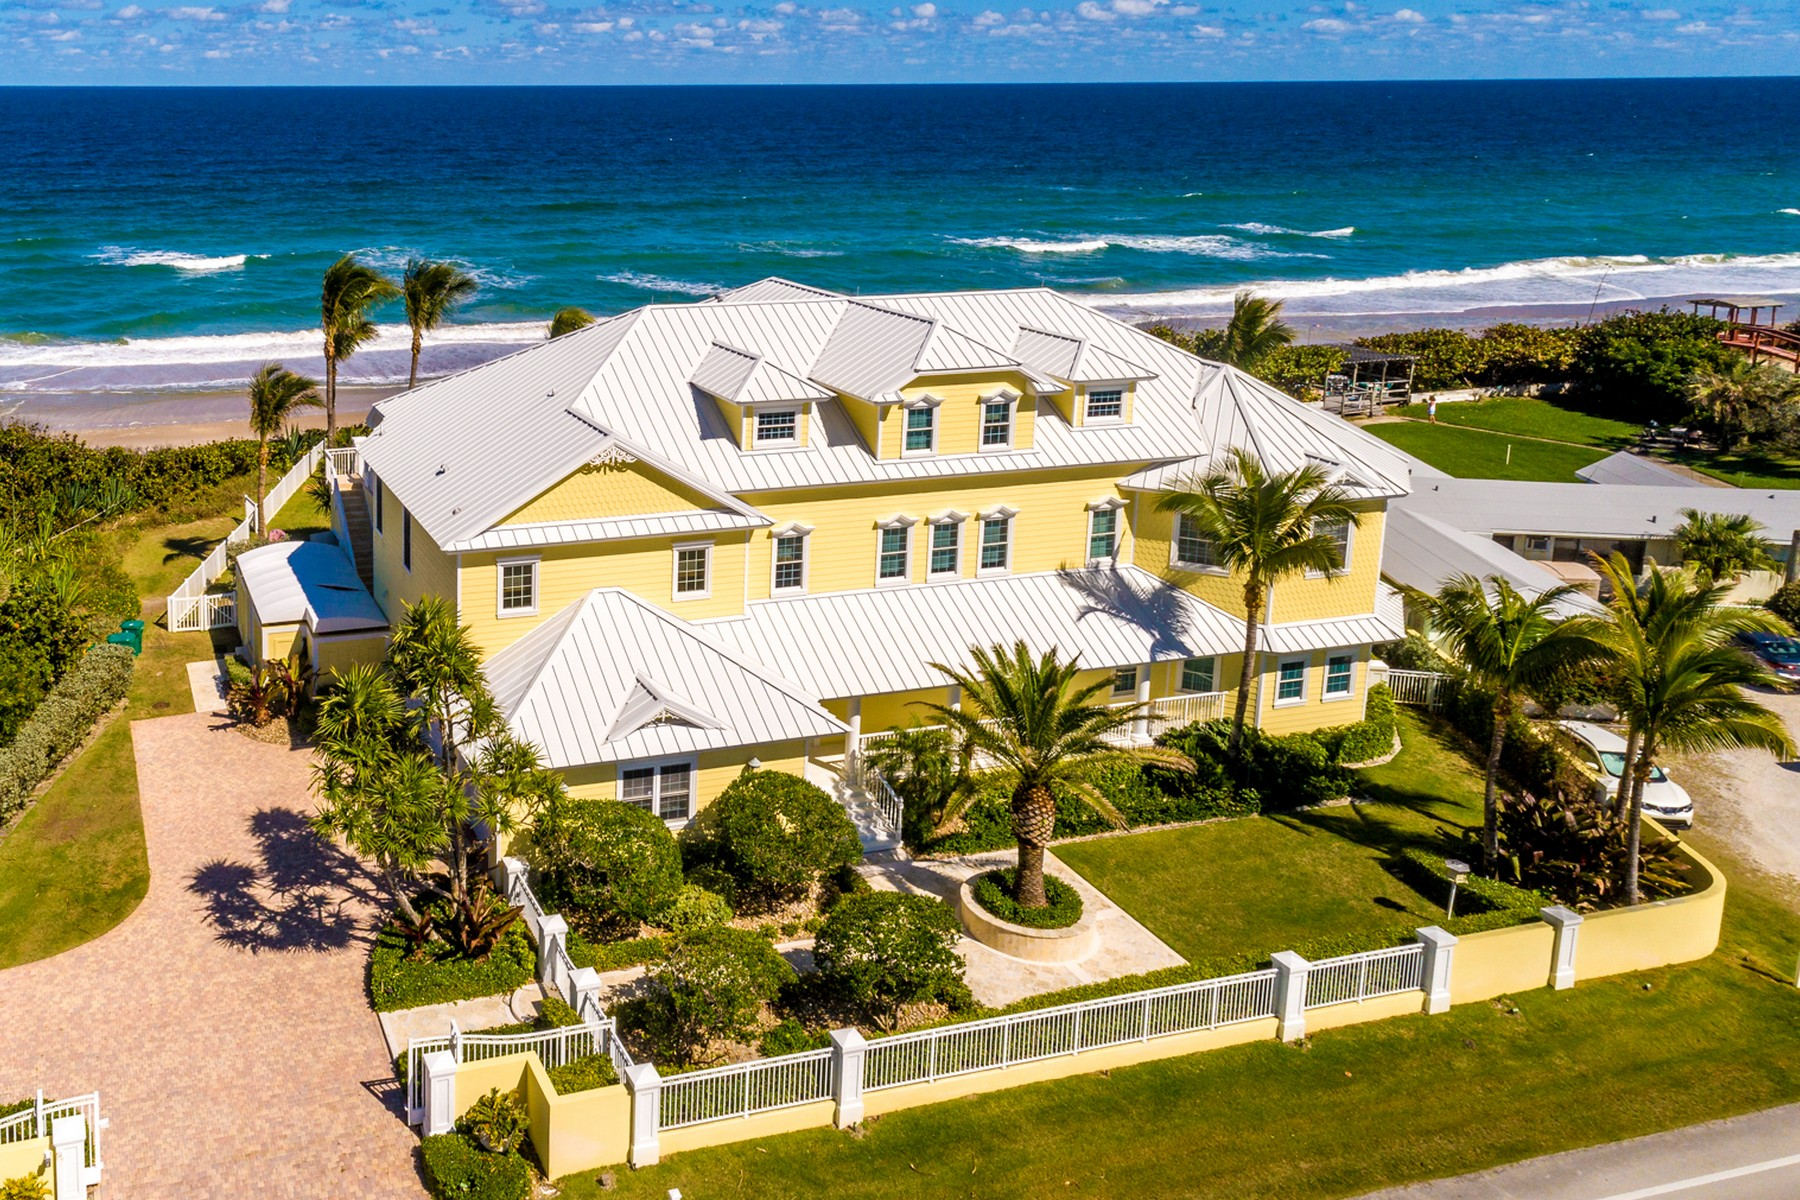 Single Family Home for Sale at Gorgeous Tropically Landscaped Home with Endless Ocean Vistas 5045 S Highway A1A Melbourne Beach, Florida 32951 United States